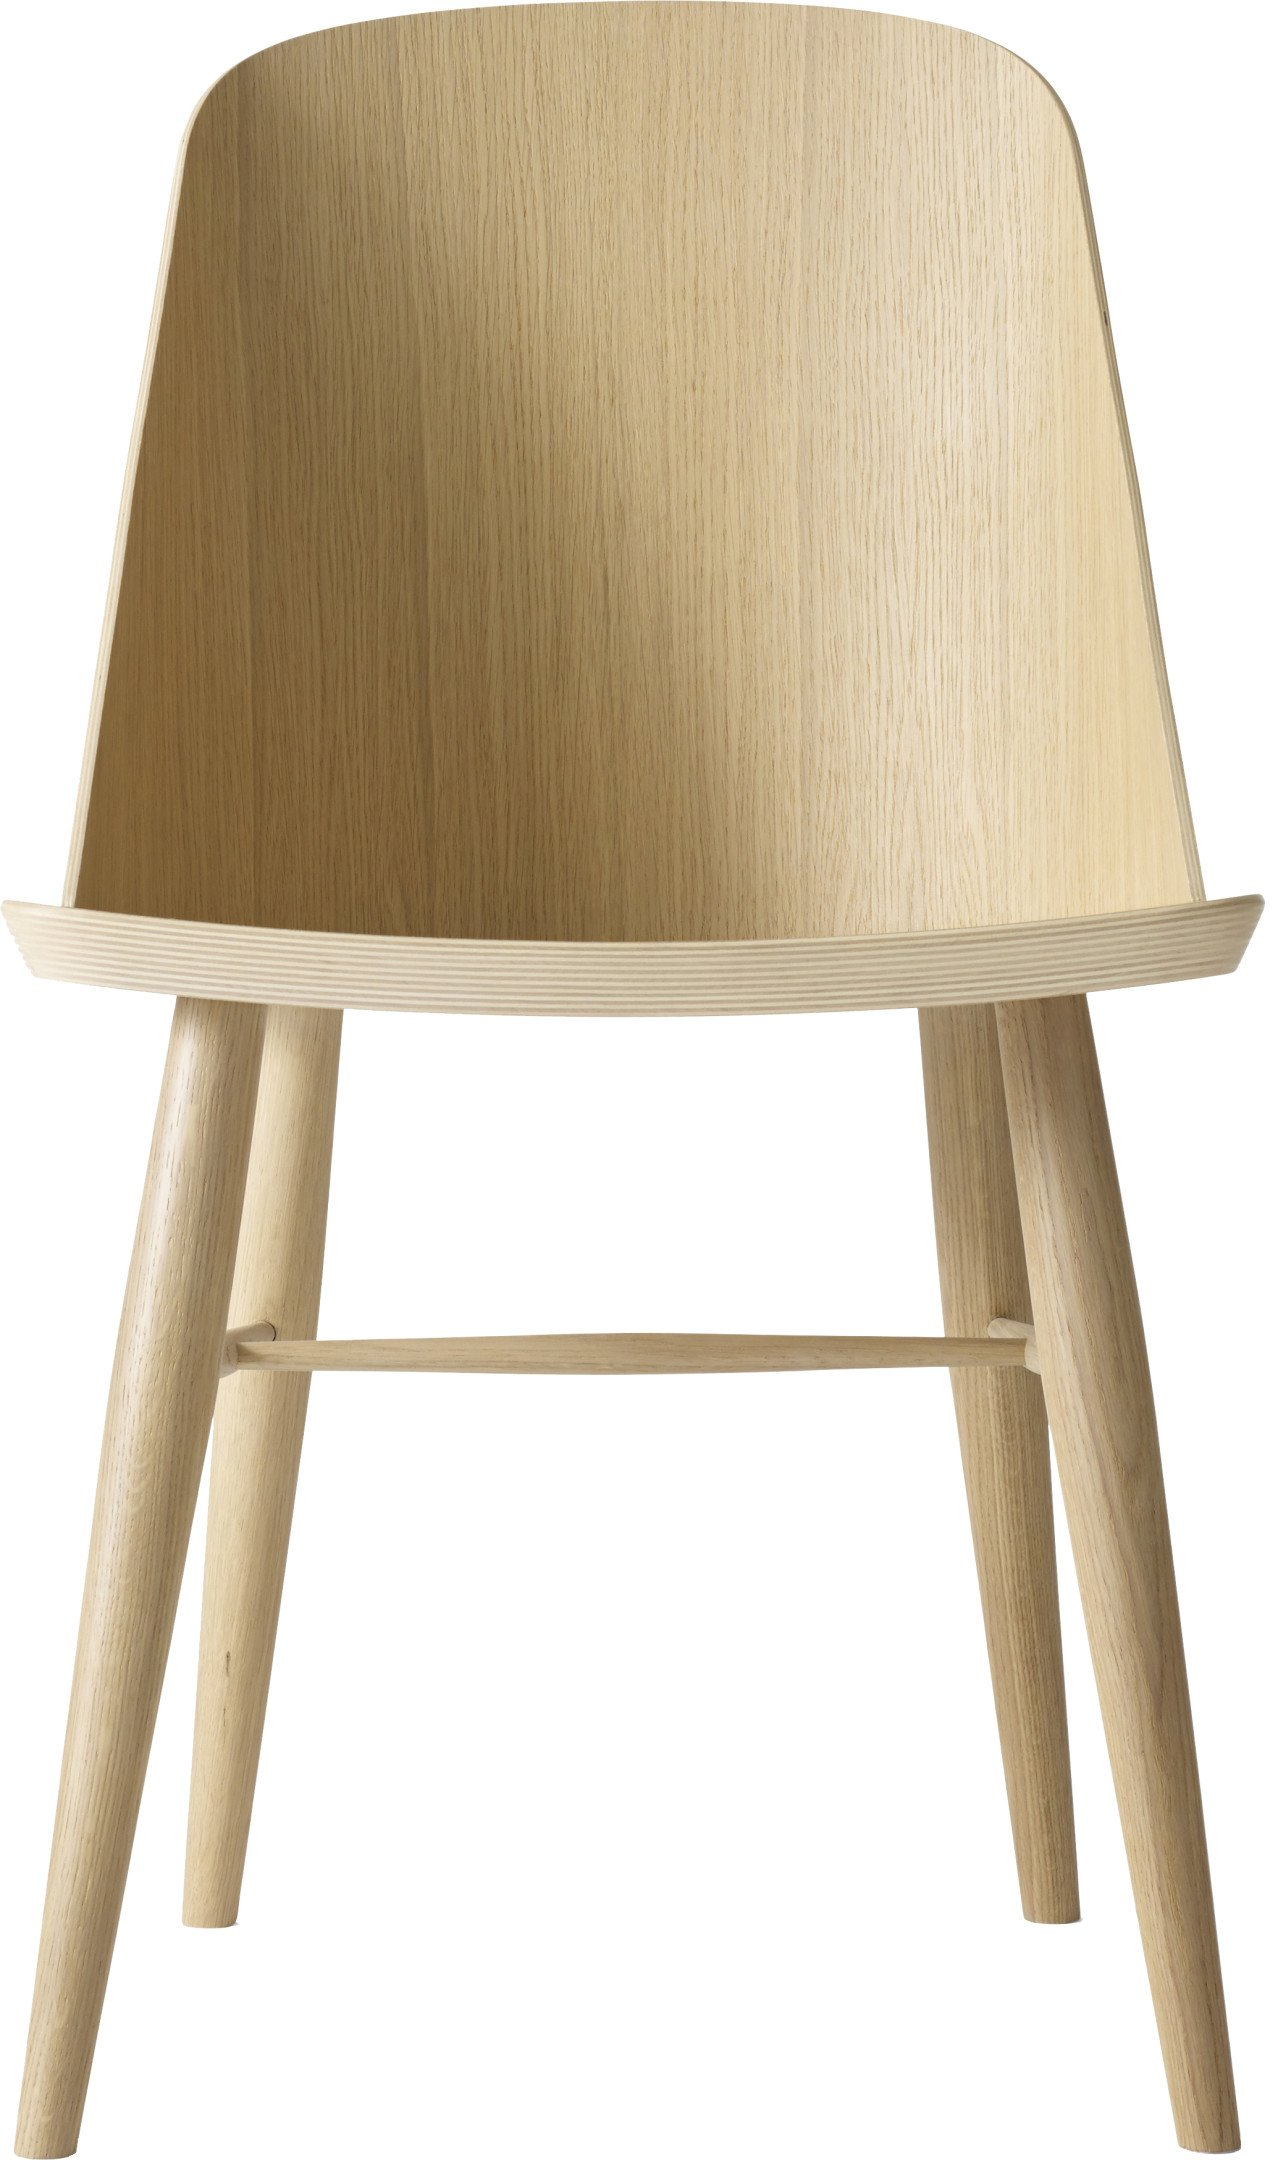 Synnes Chair Natural Oak by F. Svantun for Menu